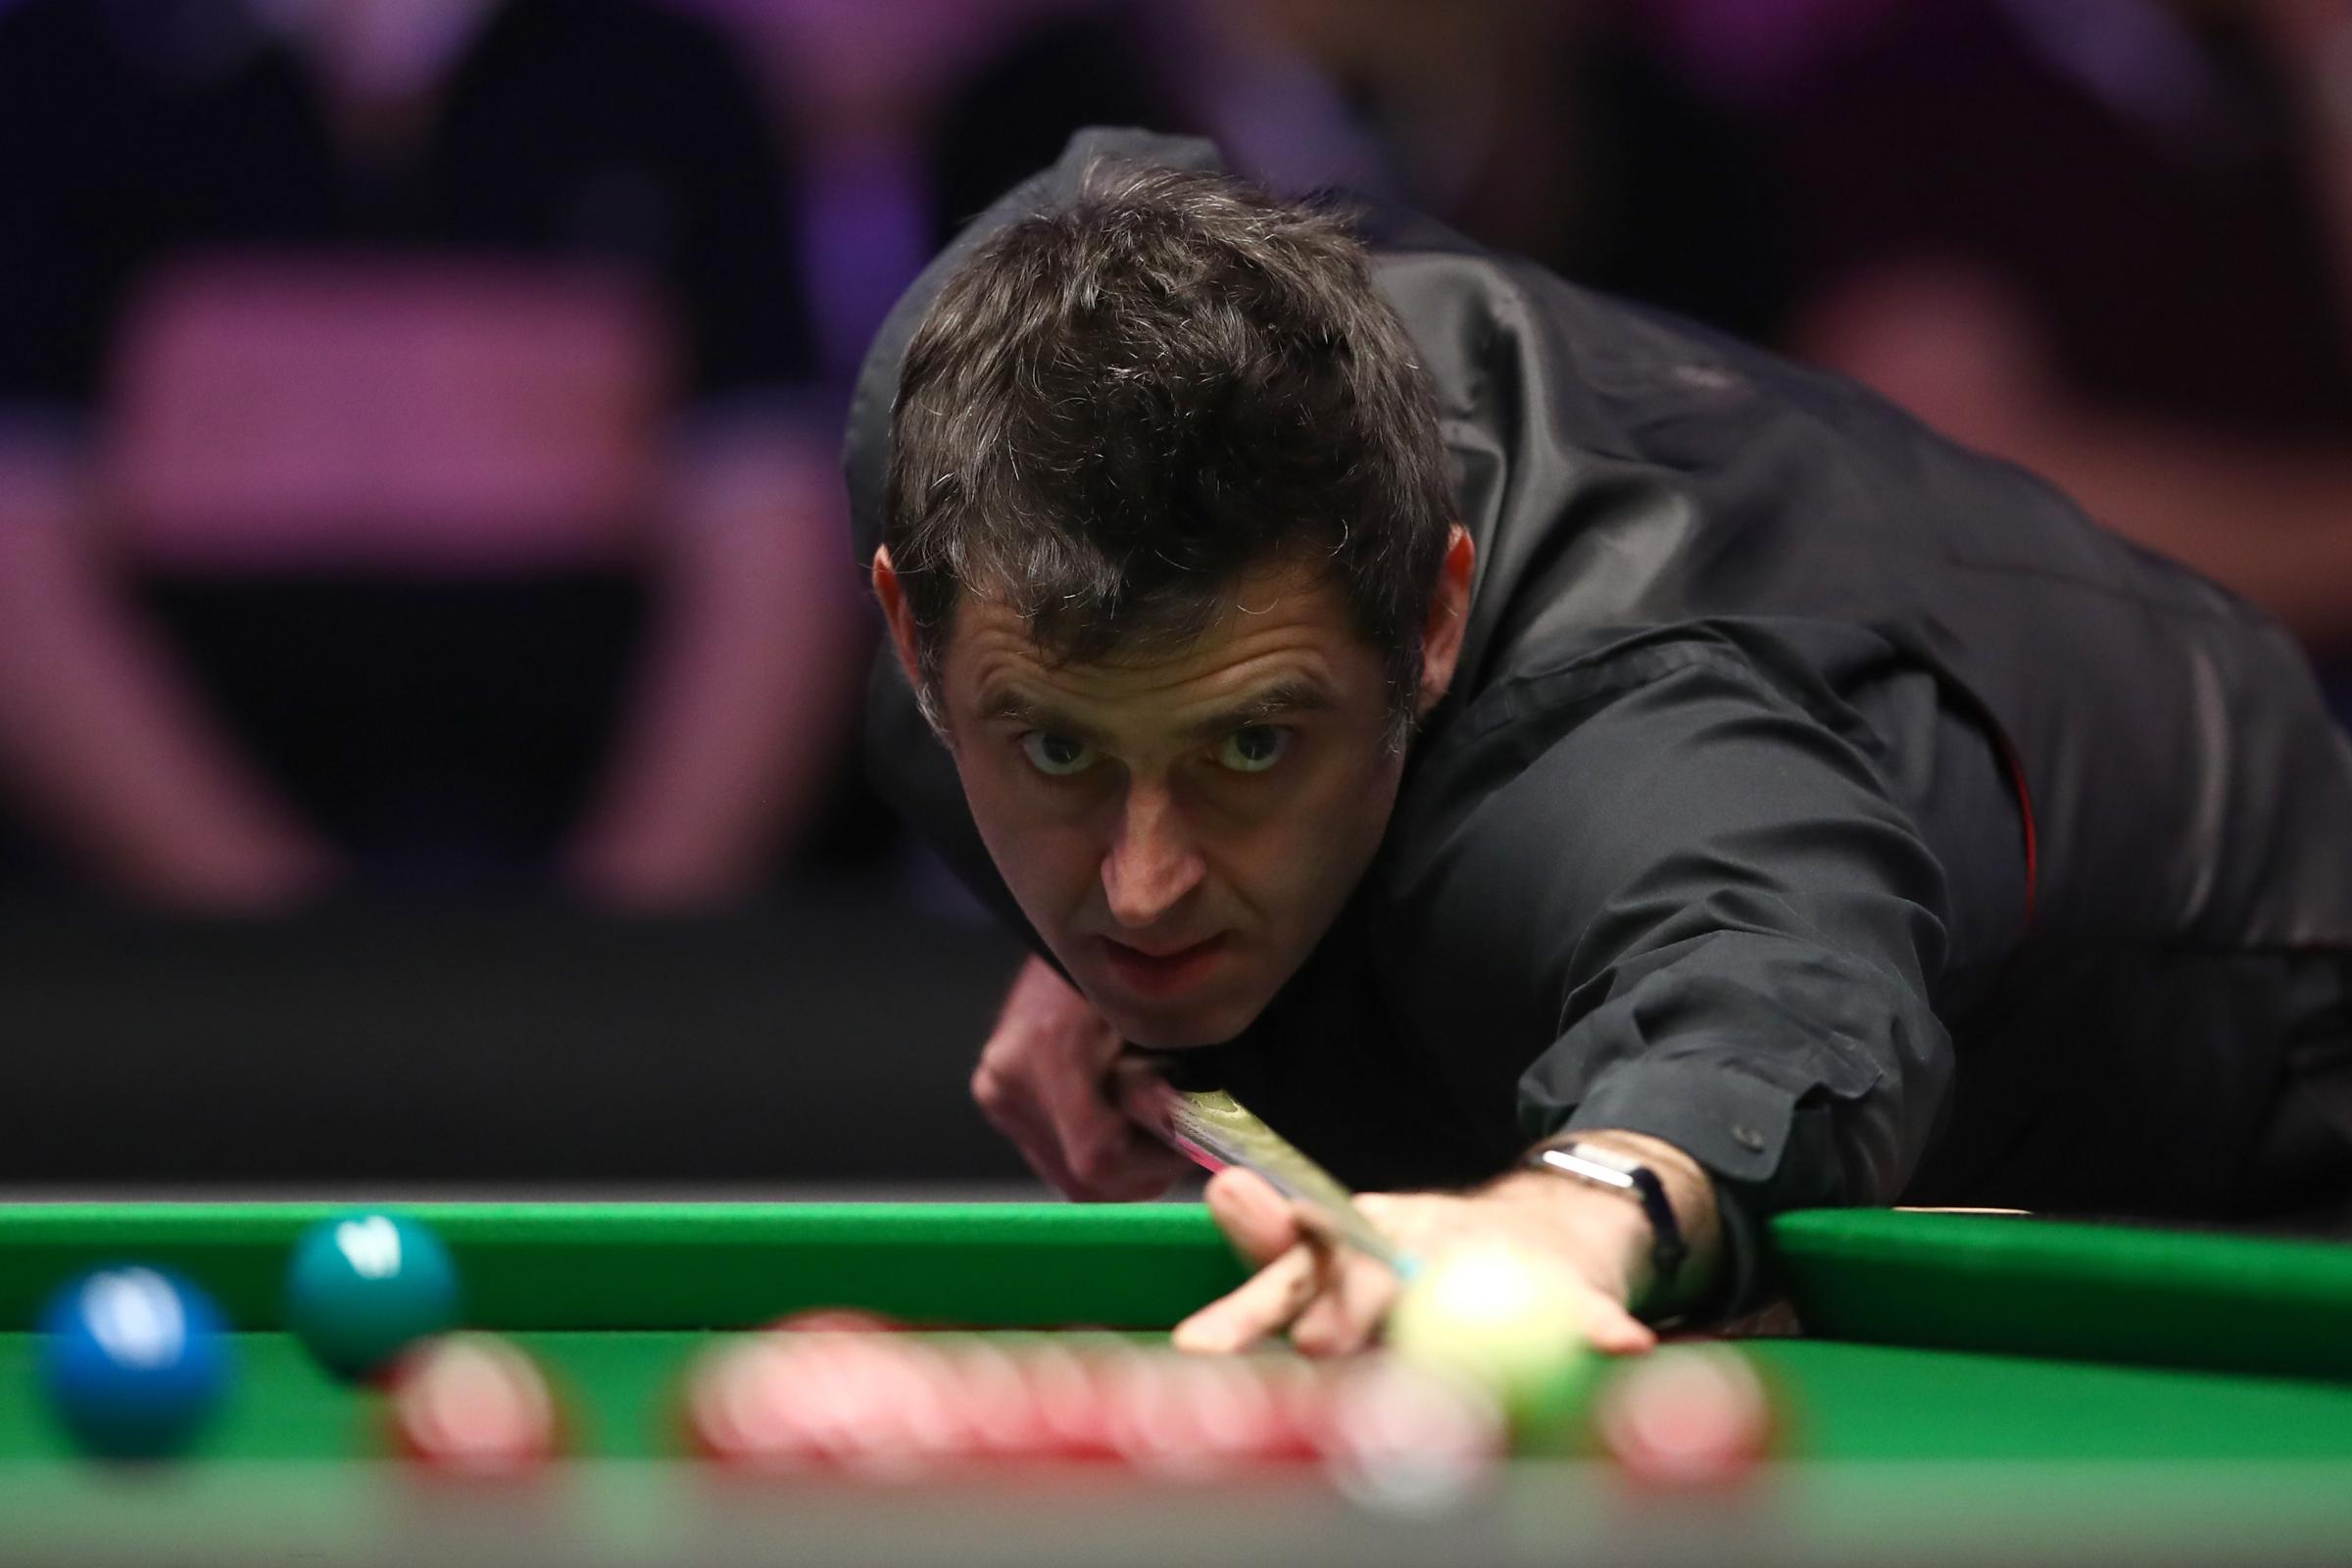 Ronnie O'Sullivan at the 2018 Dafabet Masters